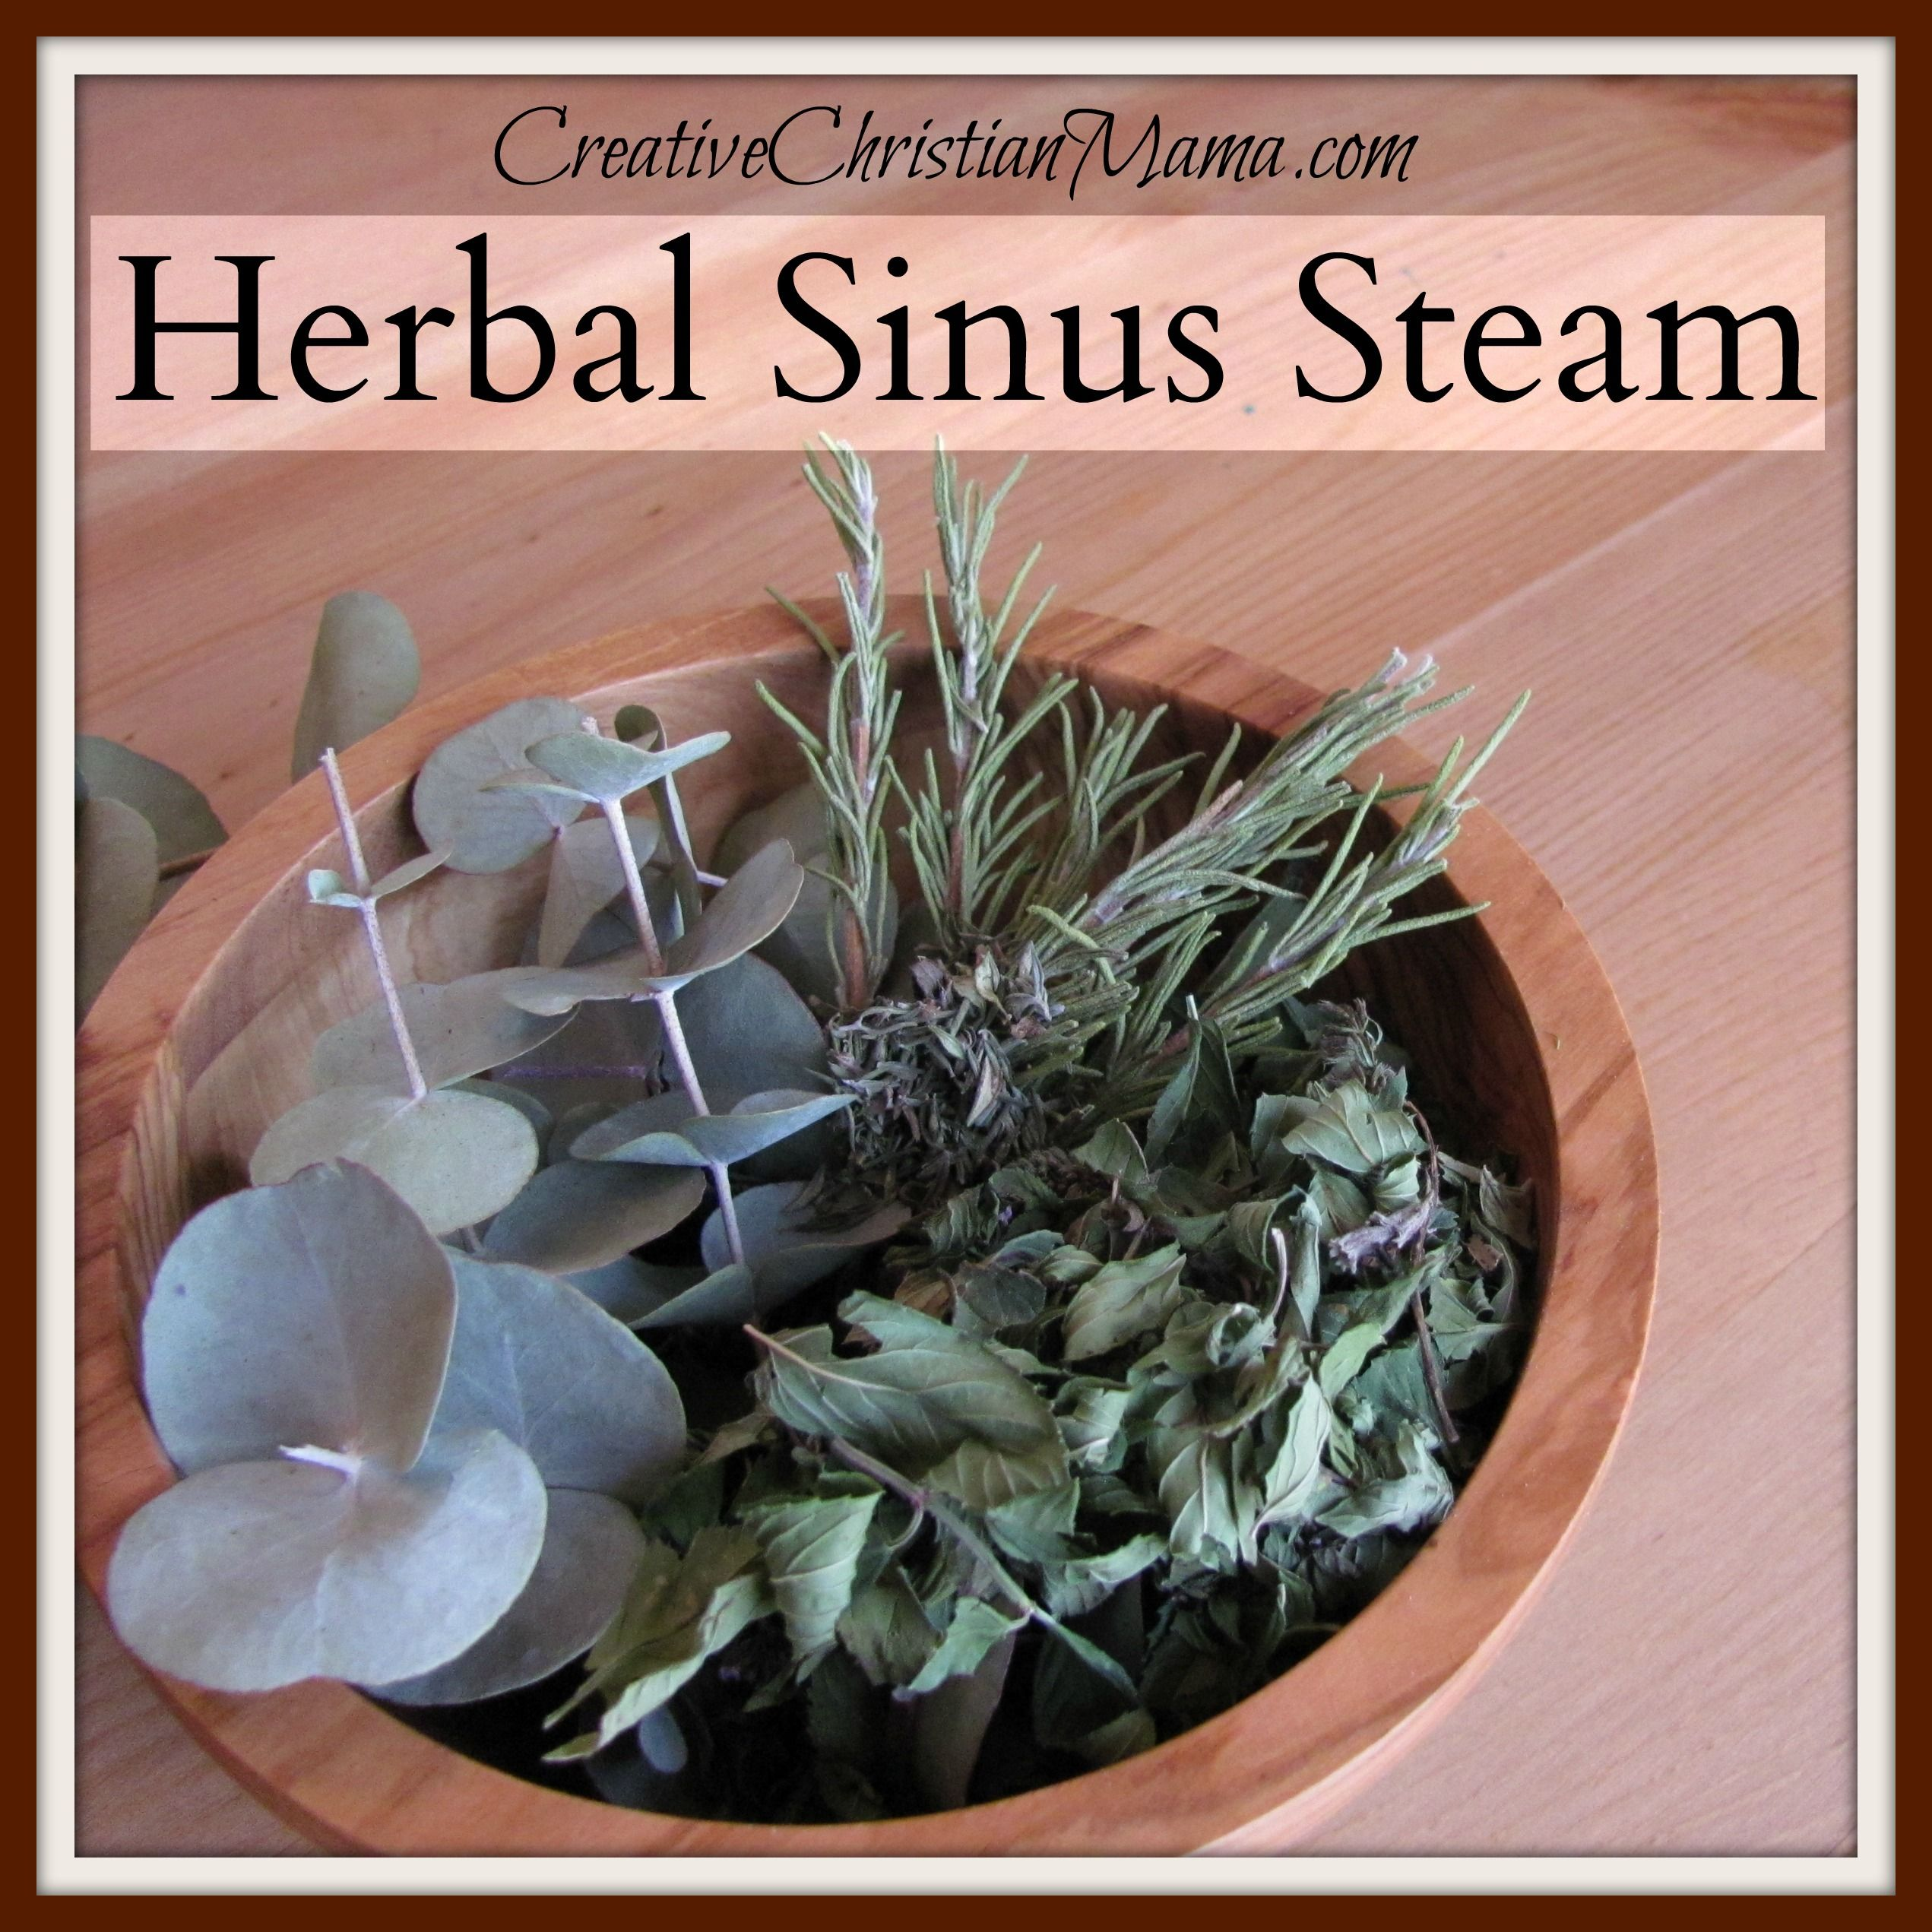 Herbal Sinus Steam- this will clear your sinuses right up